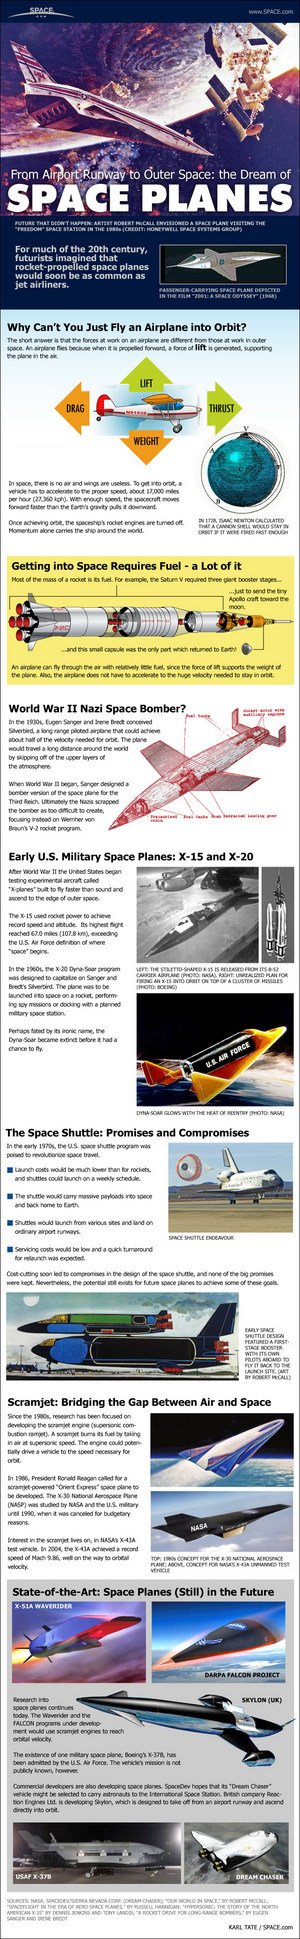 "Space planes have long been a staple of science fiction, but became reality with the advent of NASA's space shuttle. <a href=""http://www.space.com/12171-space-planes-winged-spaceships-evolution-infographic.html"">See how engineers turned the dream of winged spaceship into reality with NASA's space shuttle in this Space.com infographic</a>."